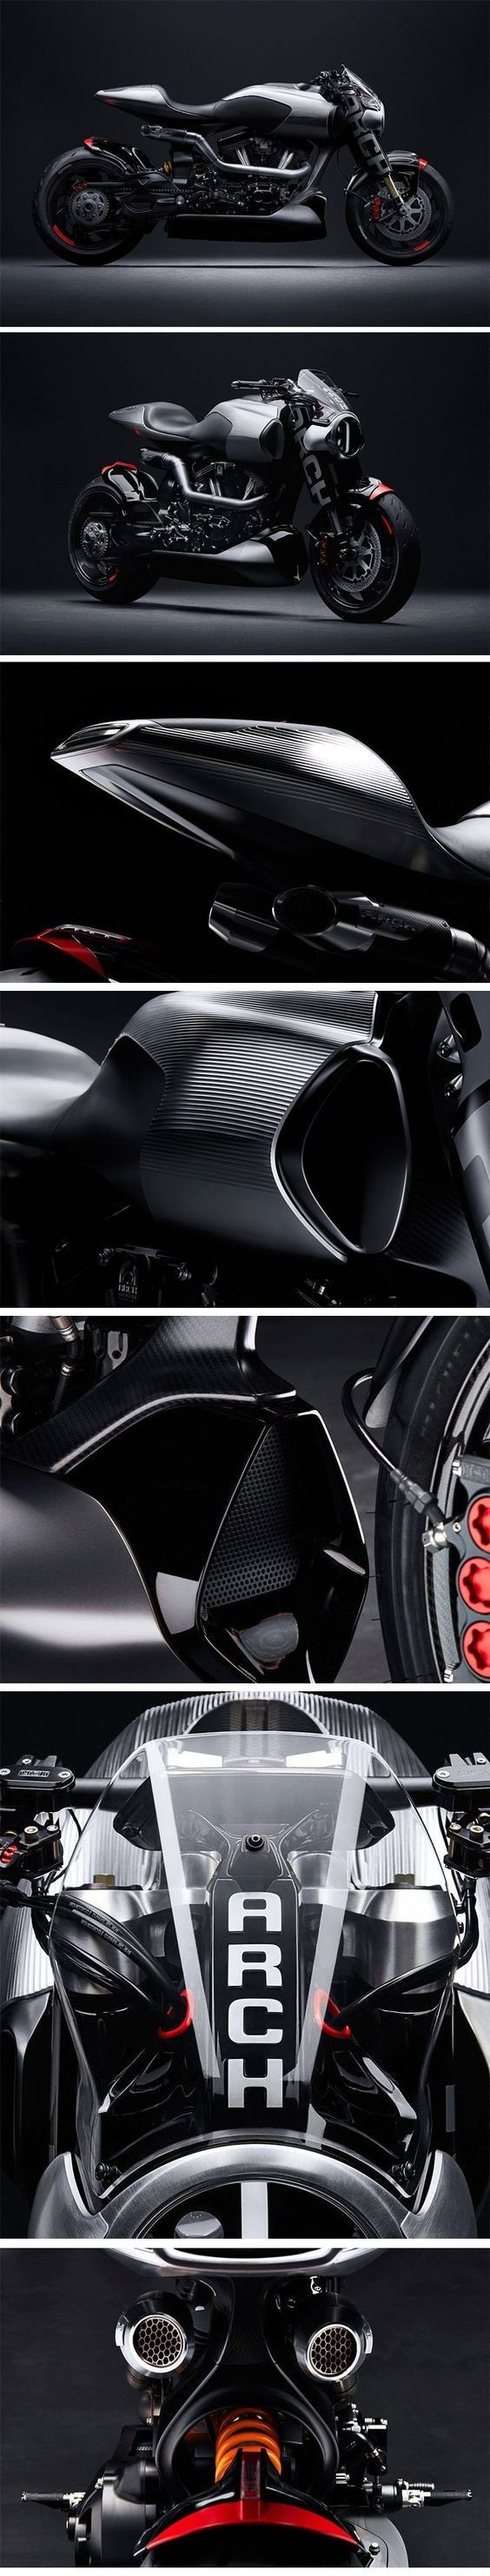 Keanu Reeves Arch Motorcycle Method 143 Concept Monster